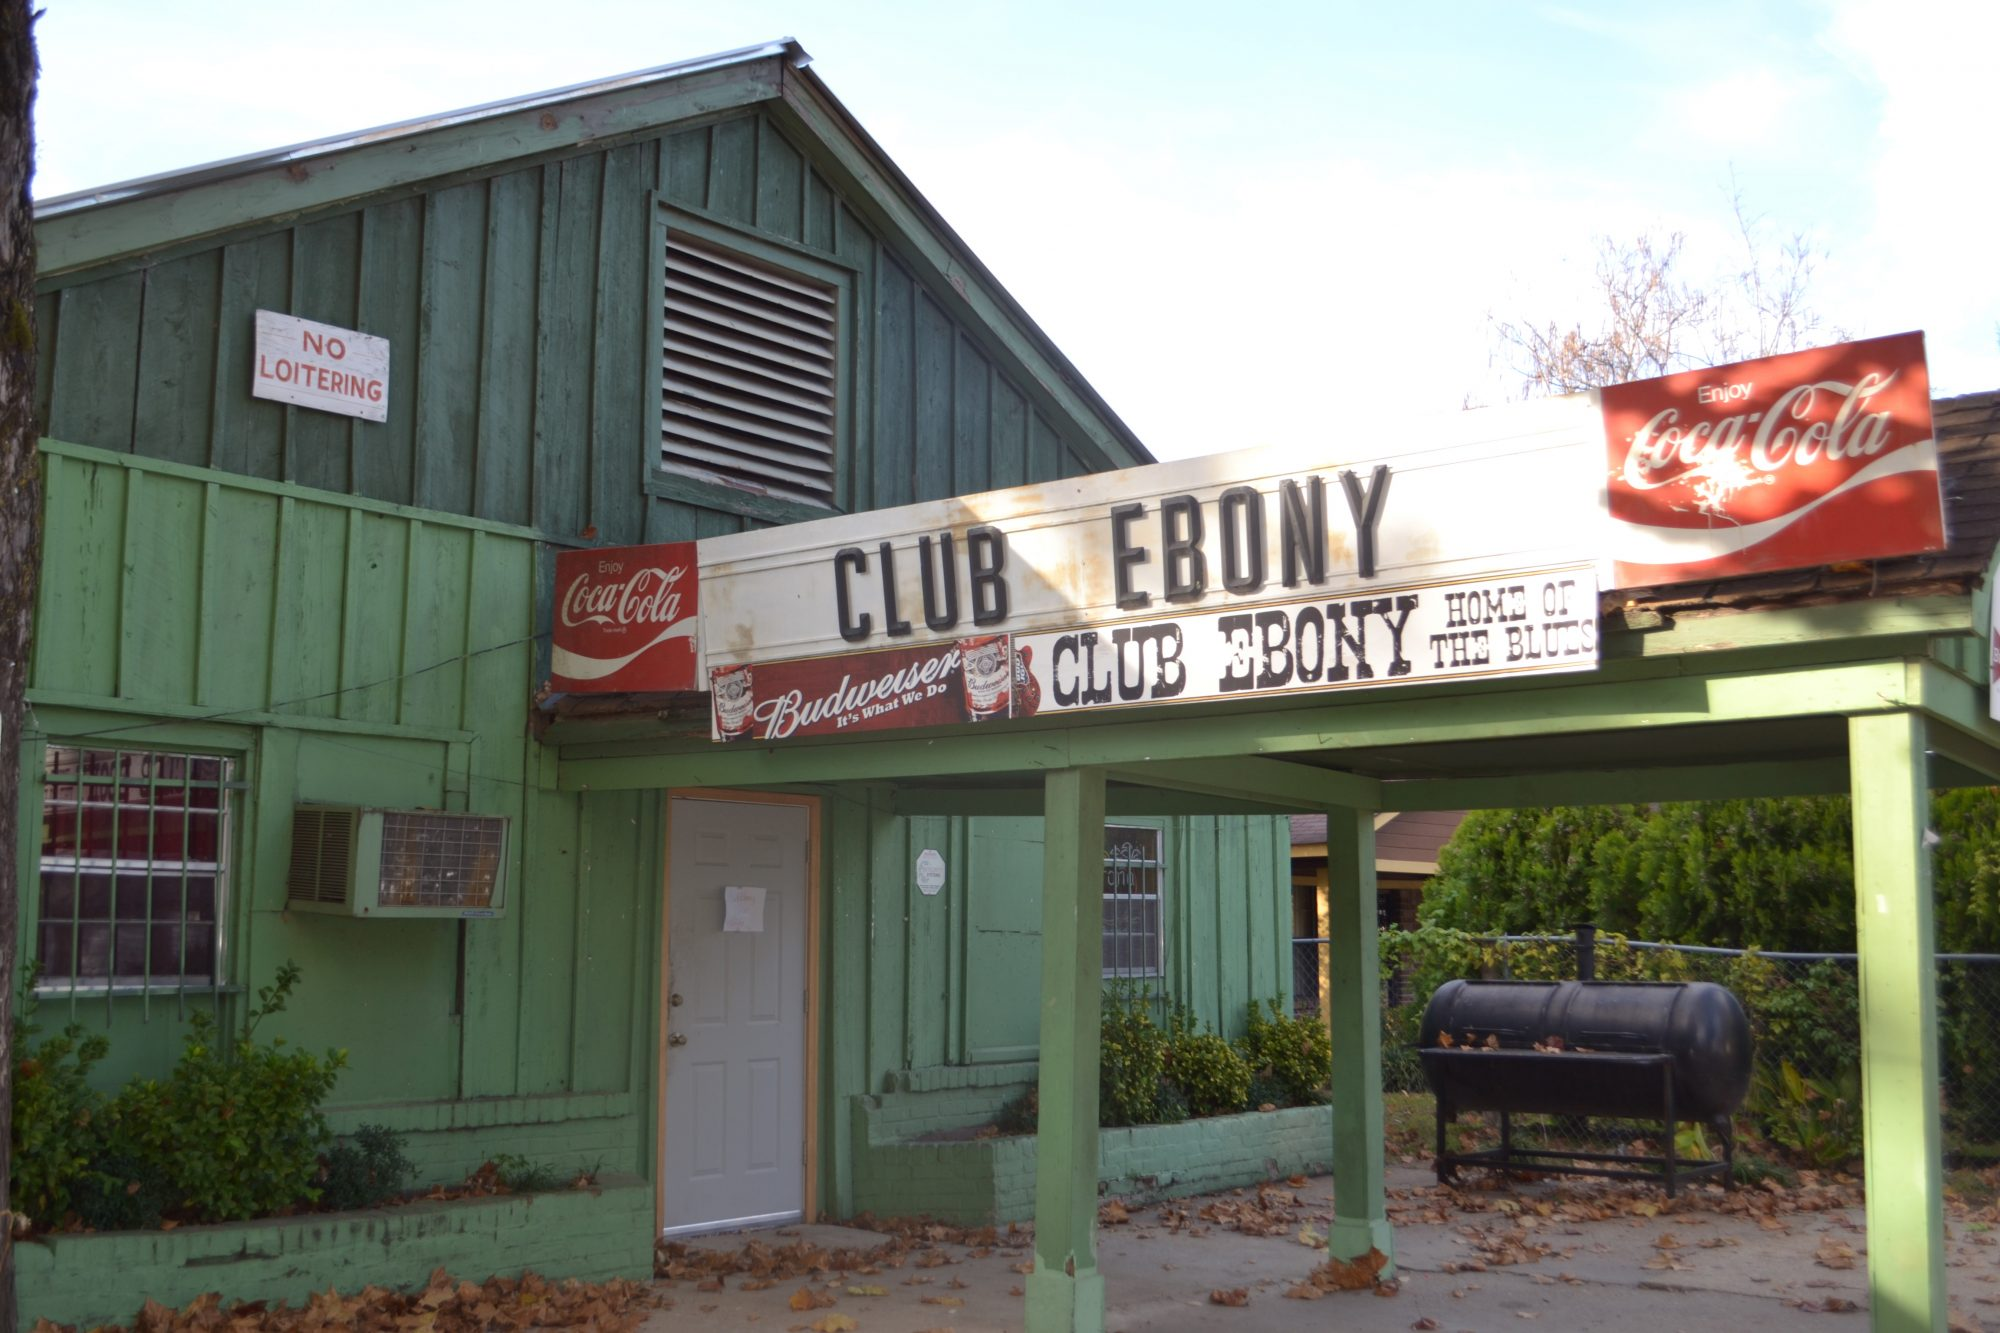 Club Ebony (Indianola, Mississippi)